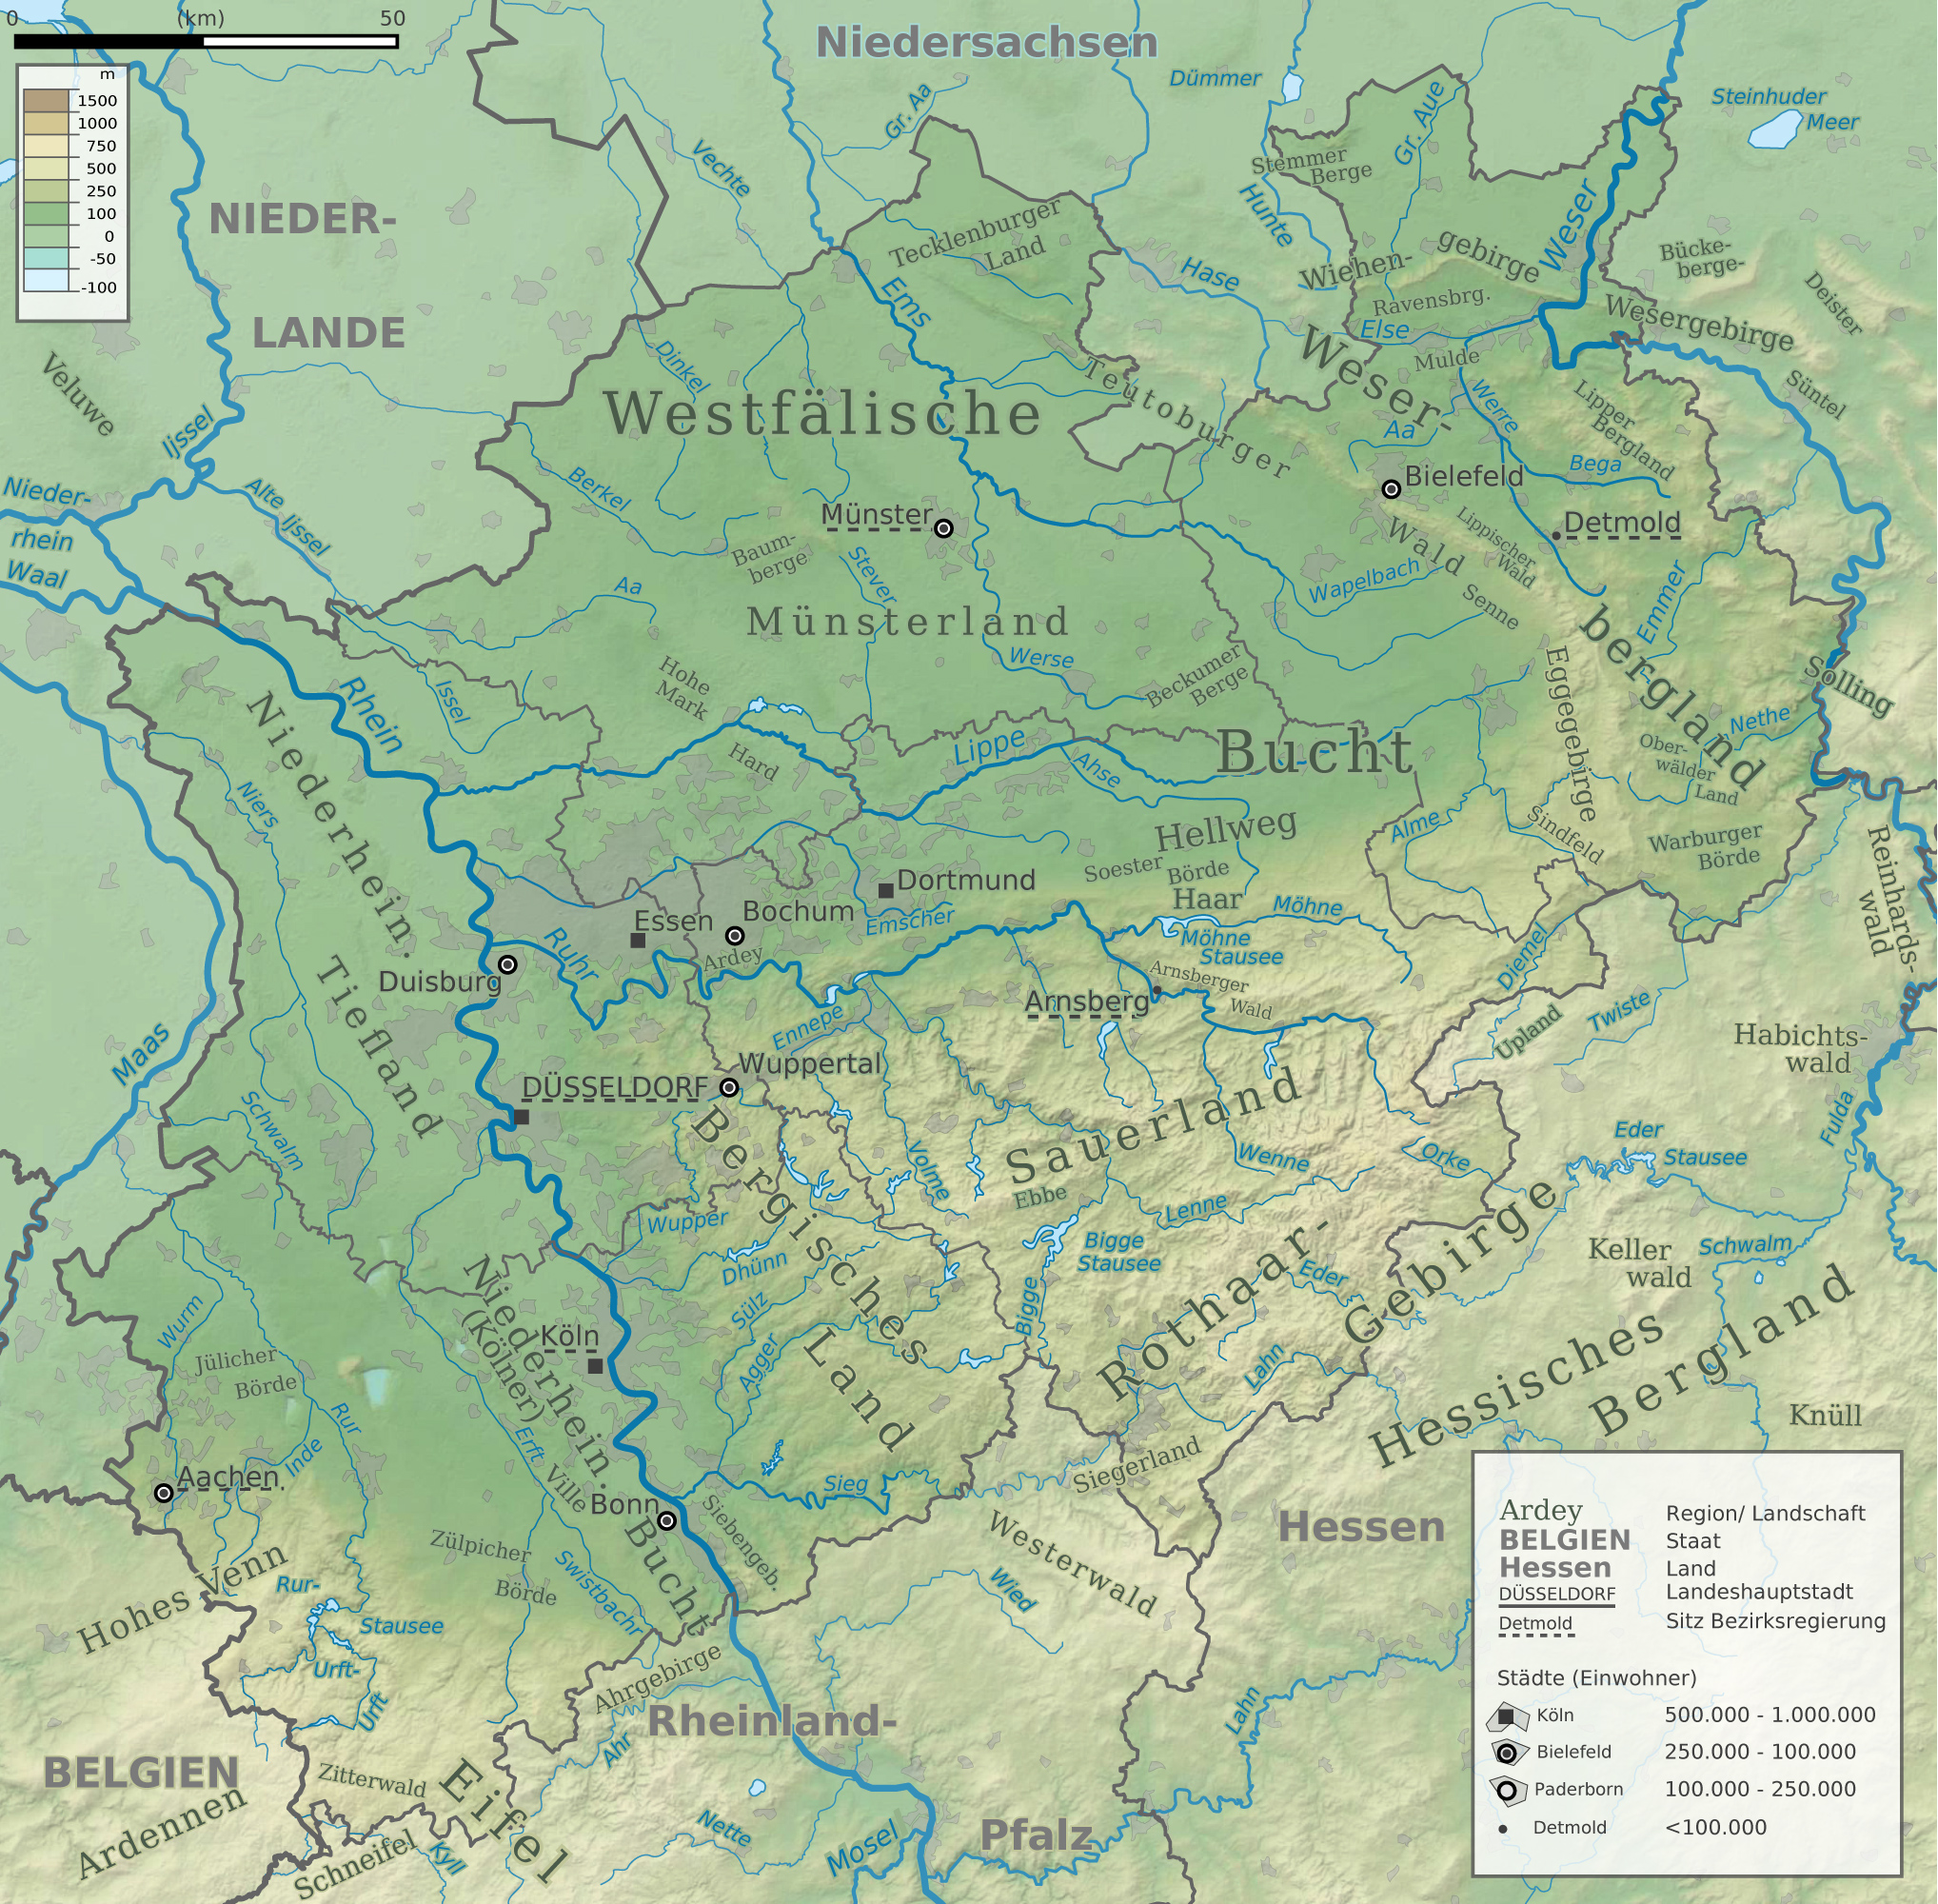 filenorth rhine westphalia topographic map 02jpg